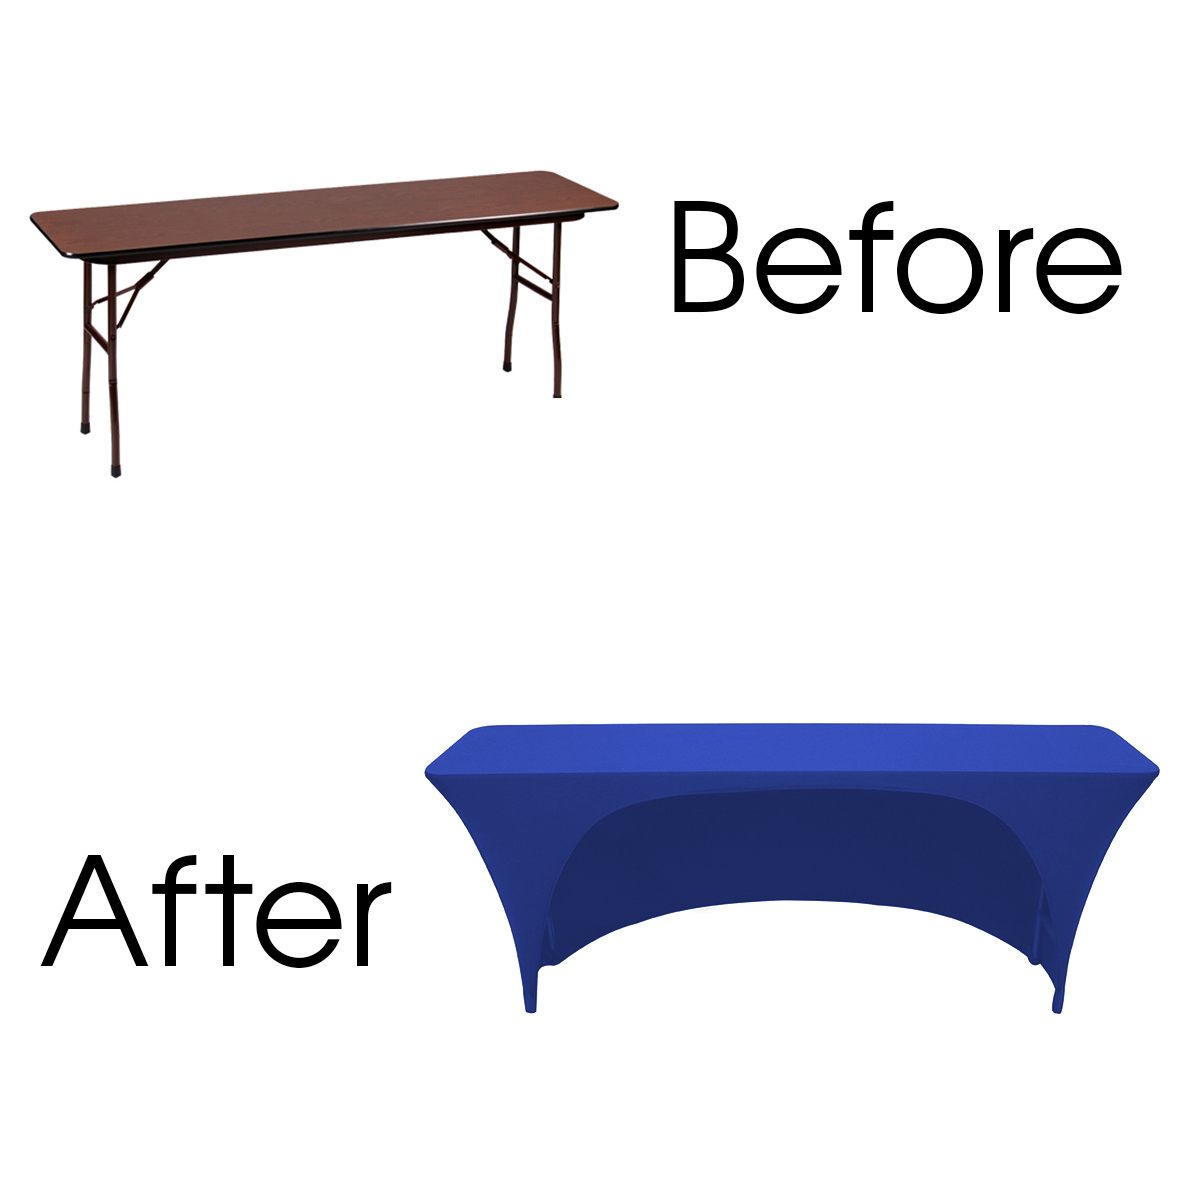 stretch-spandex-6ft-18-inches-open-back-rectangular-table-covers-royal-before-after.jpg